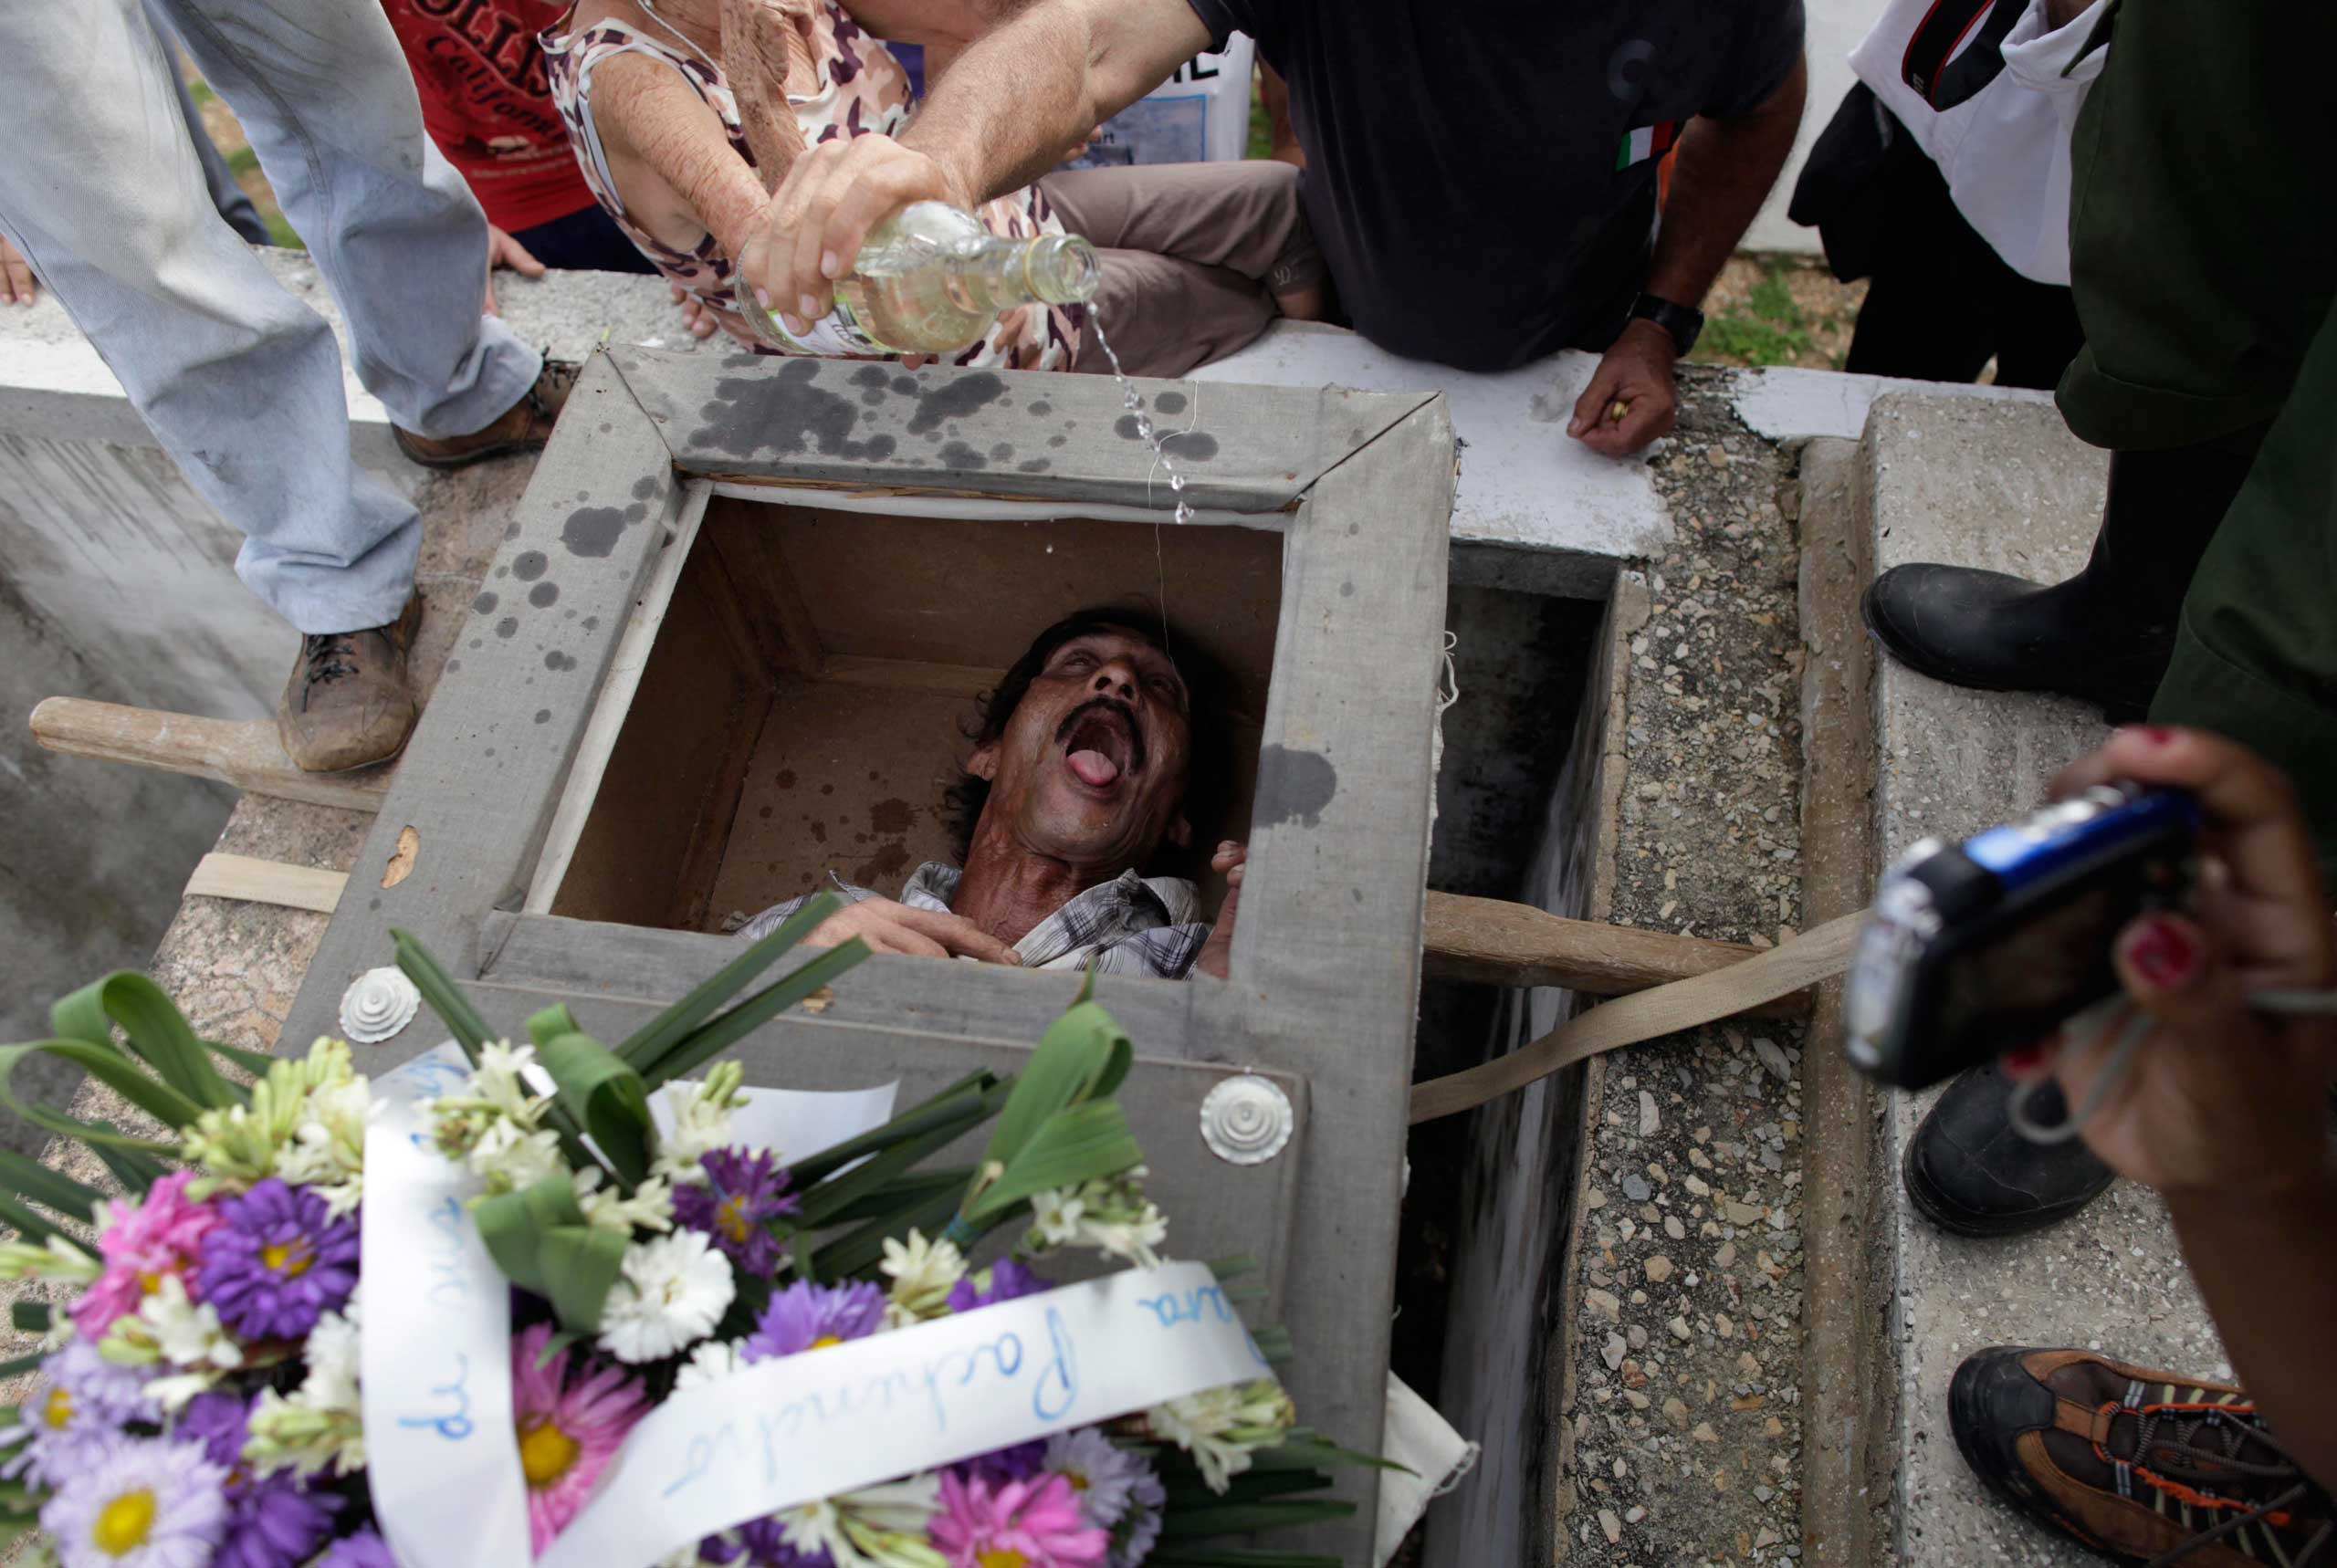 Divaldo Aguiar, who is playing the part of character Pachencho, lies inside a mock coffin as villagers splash rum into his mouth during the annual  Burial of Pachencho  celebration at a cemetery in Santiago de Las Vegas, Cuba, Feb. 5, 2014.